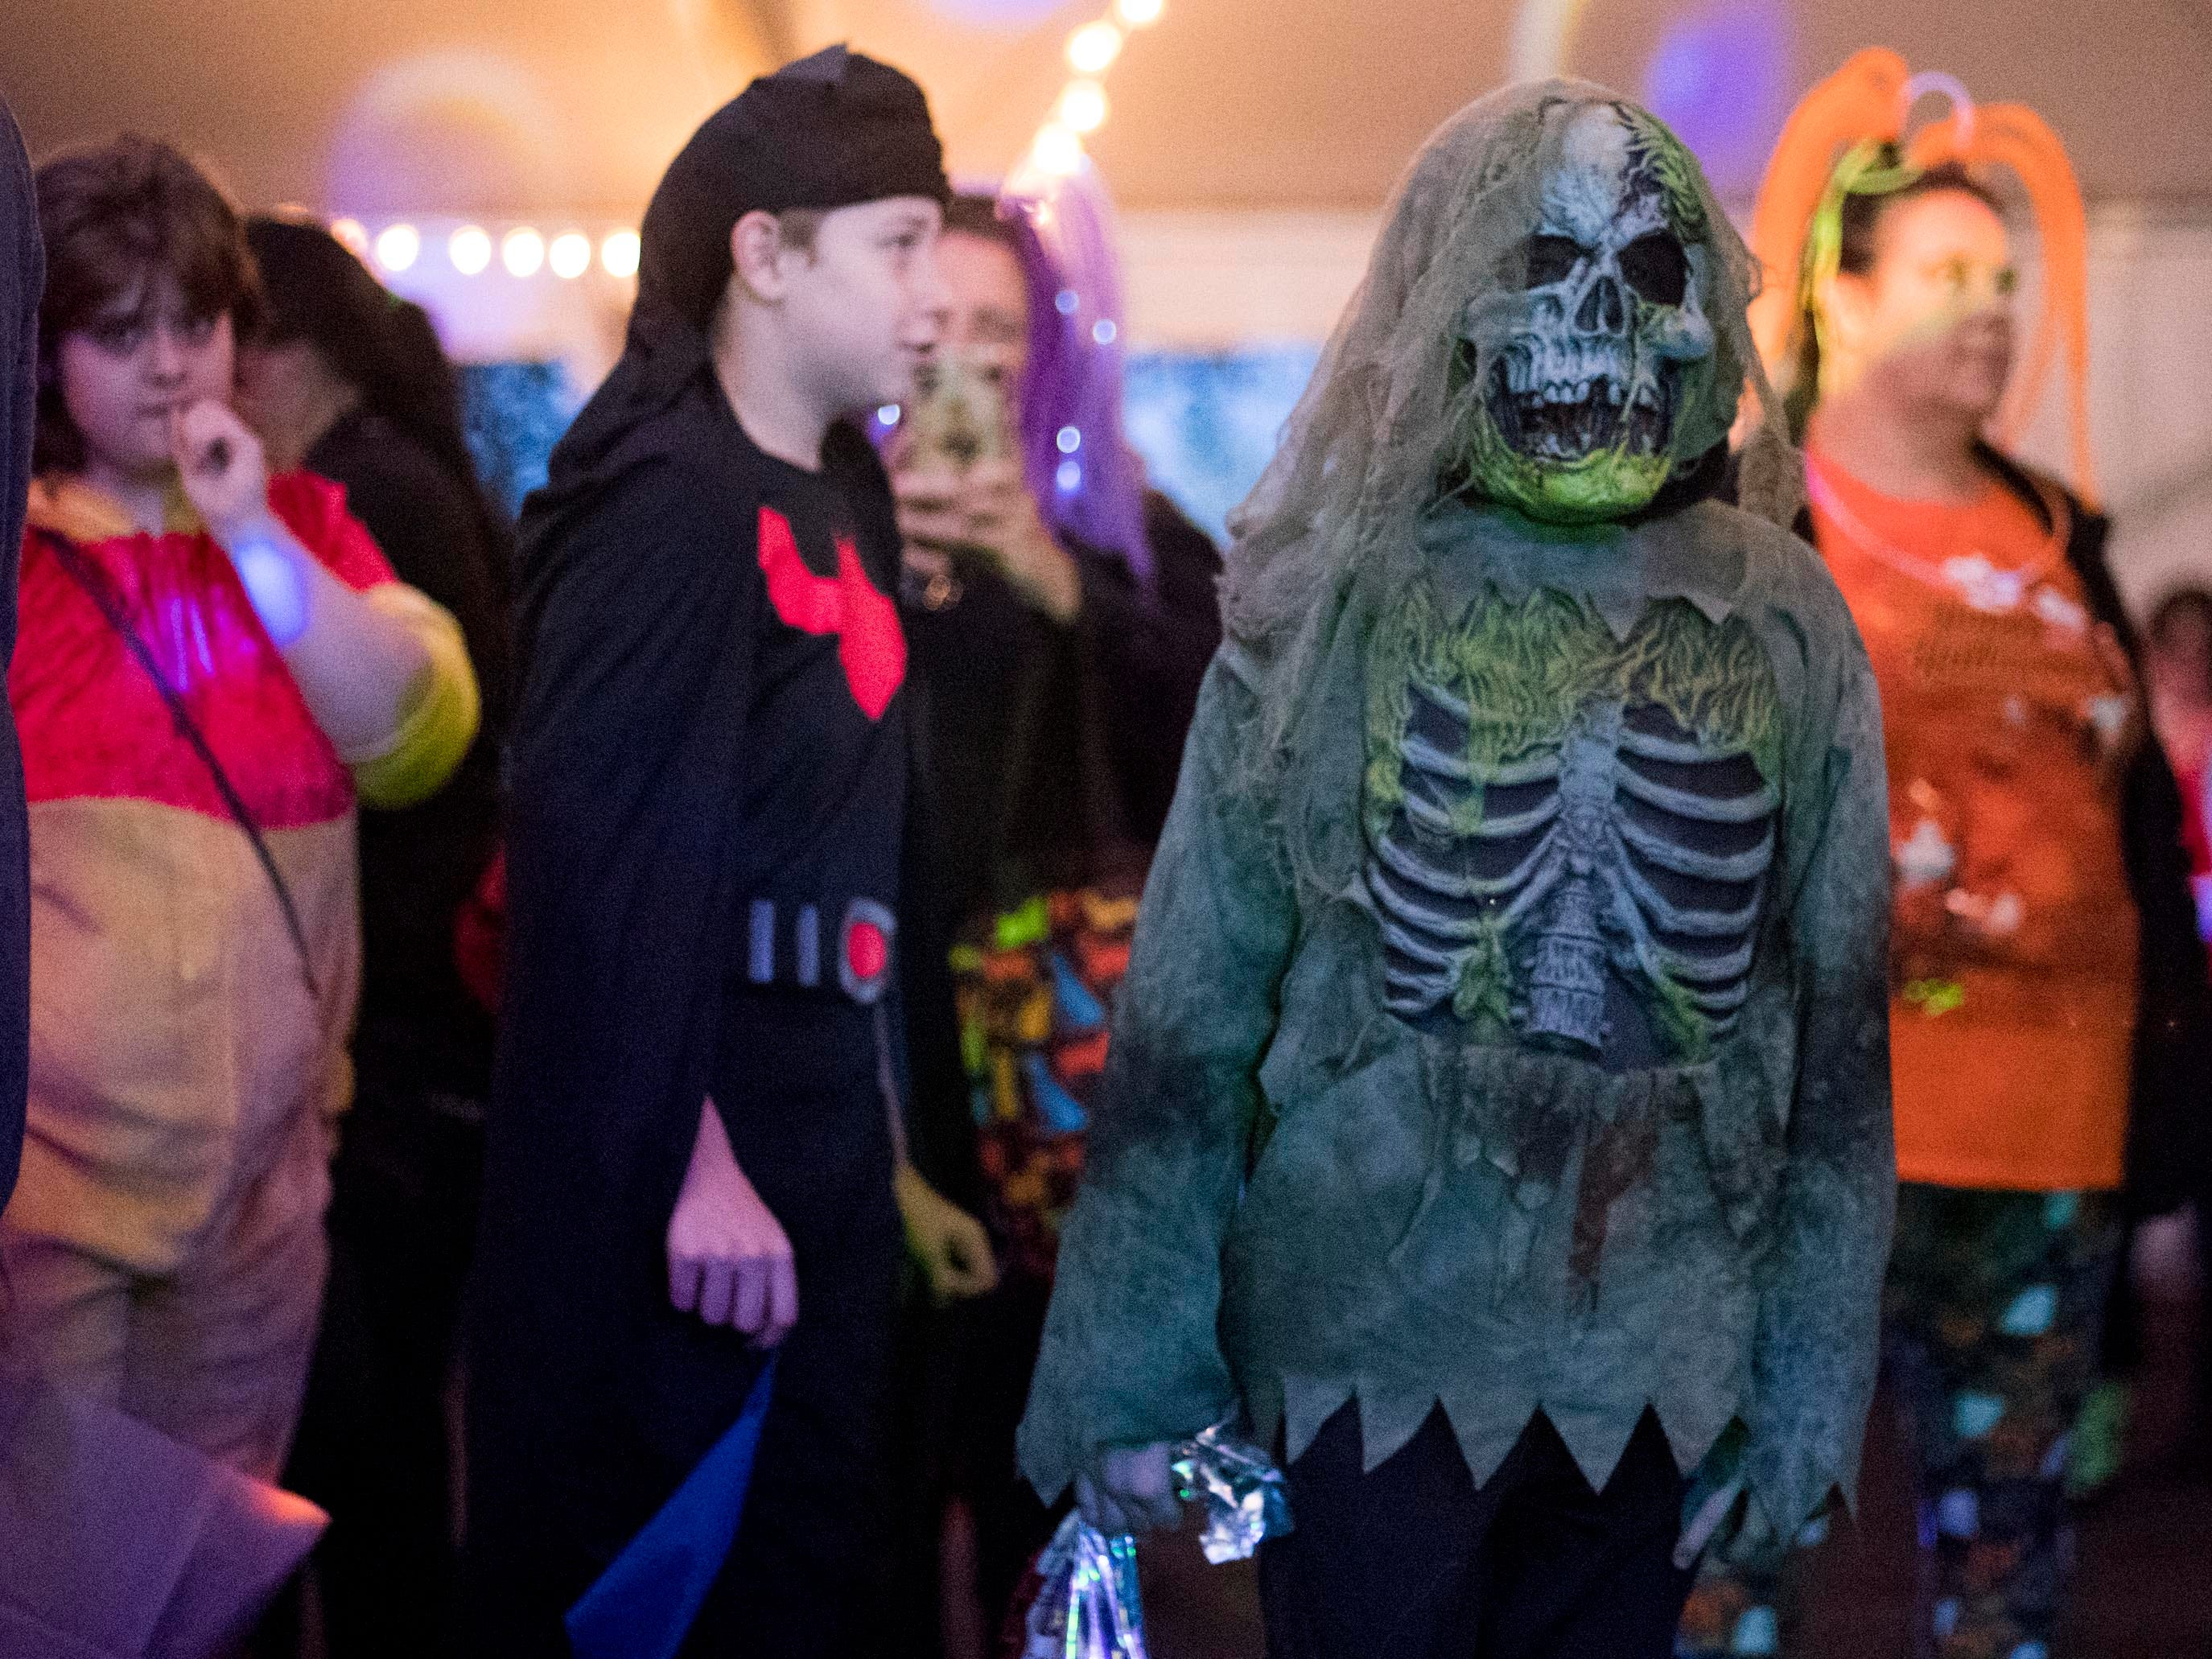 trick-or-treaters attend the Monster Mash dance party during Zoo Knoxville's Boo! at the Zoo on Saturday, October 20, 2018.